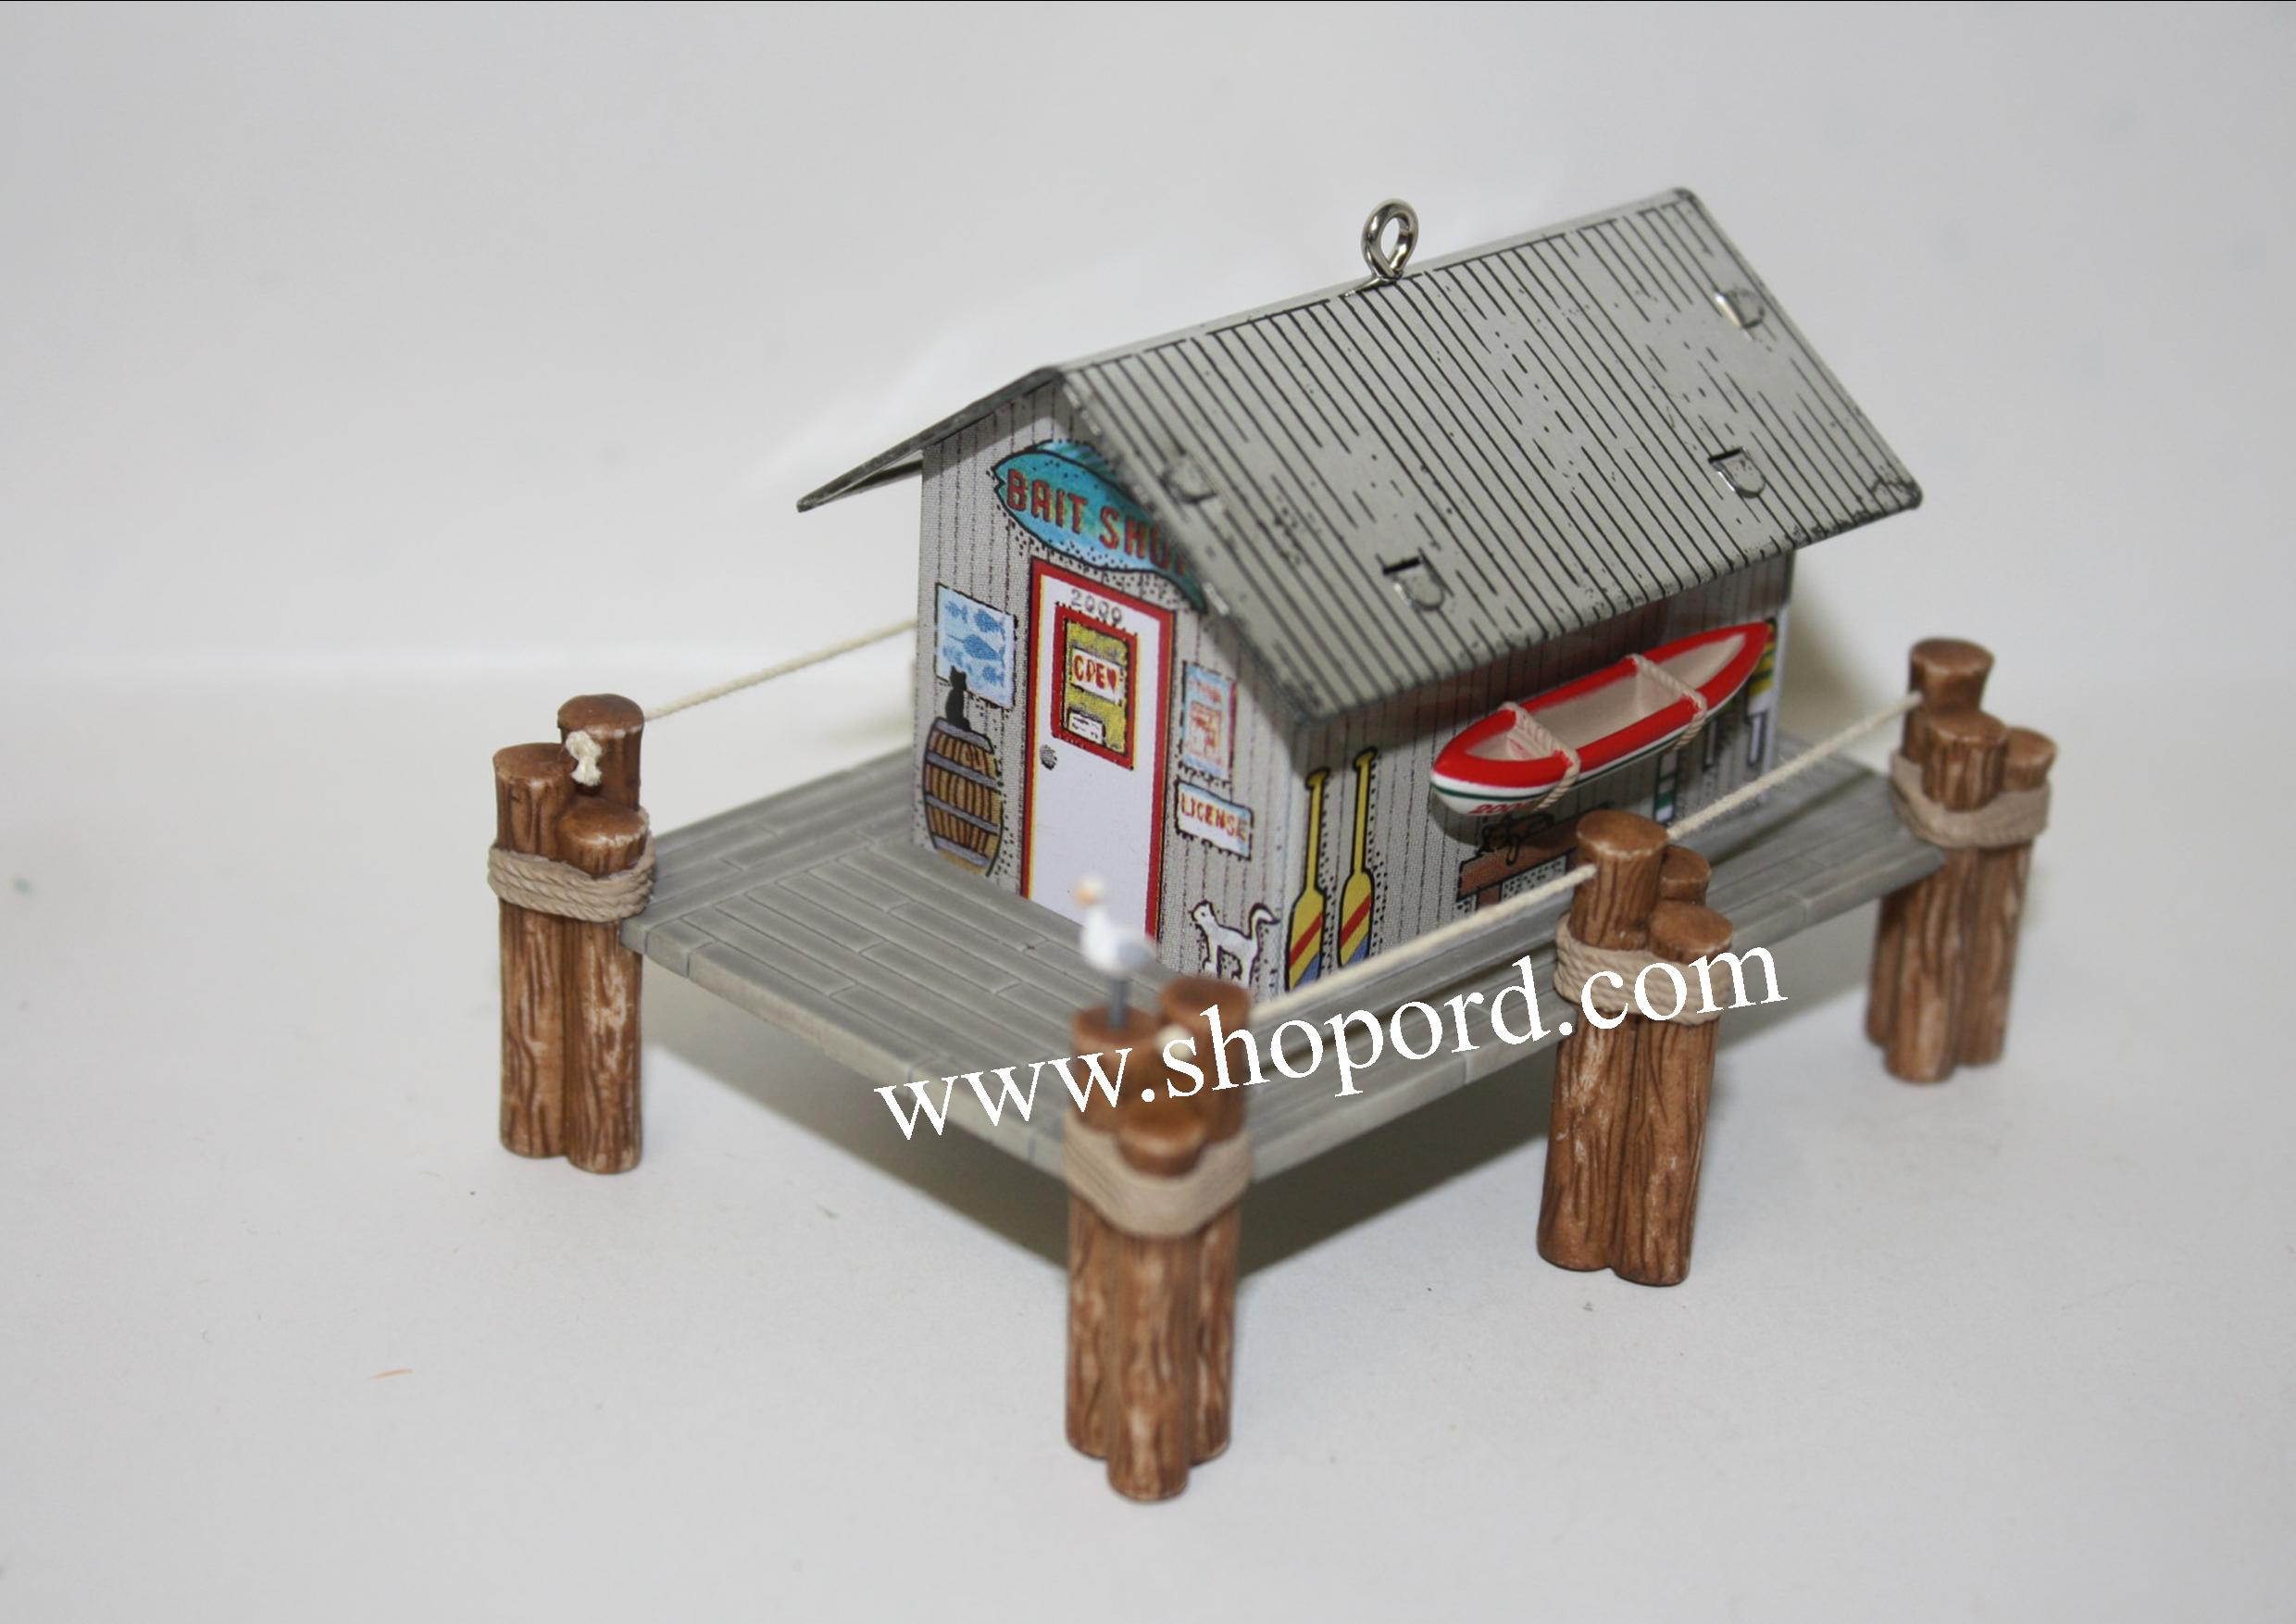 Hallmark 2000 Bait Shop With Boat Ornament 2nd In The Town and Country Series QX6631